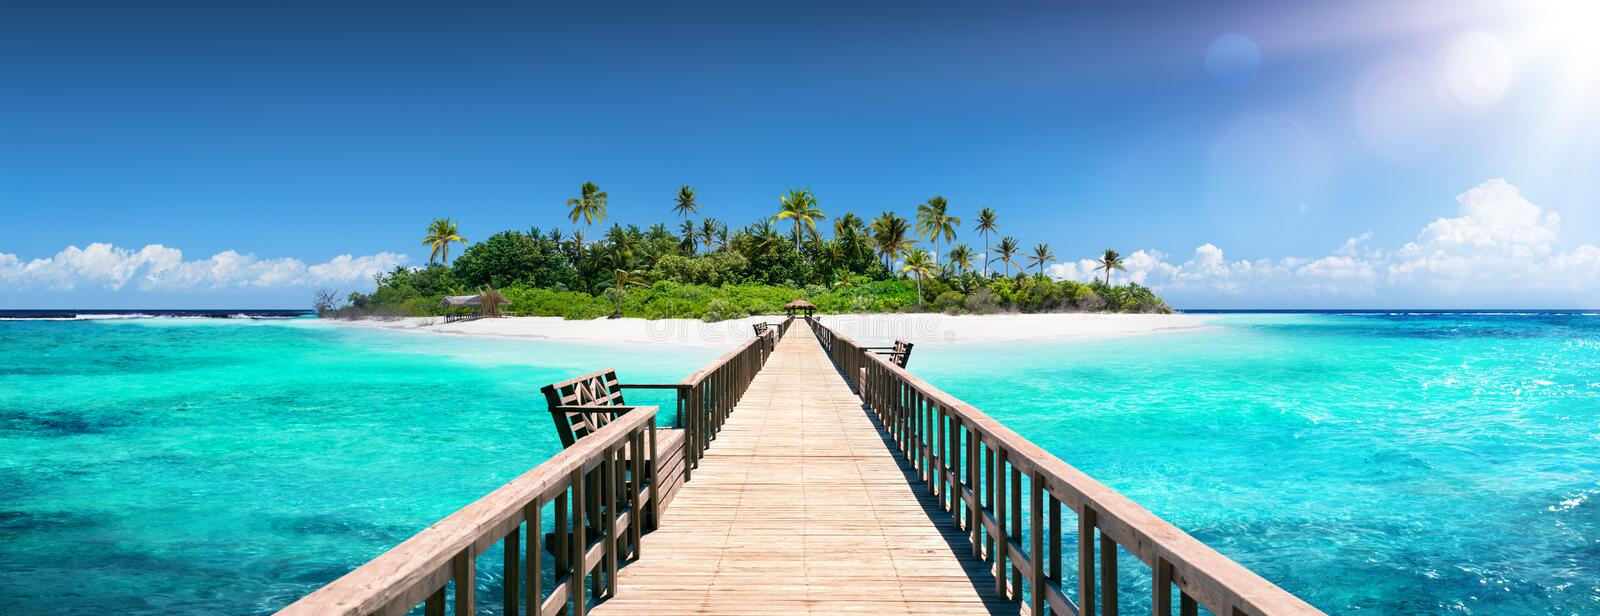 Pier For Paradise Island - destination tropicale image stock